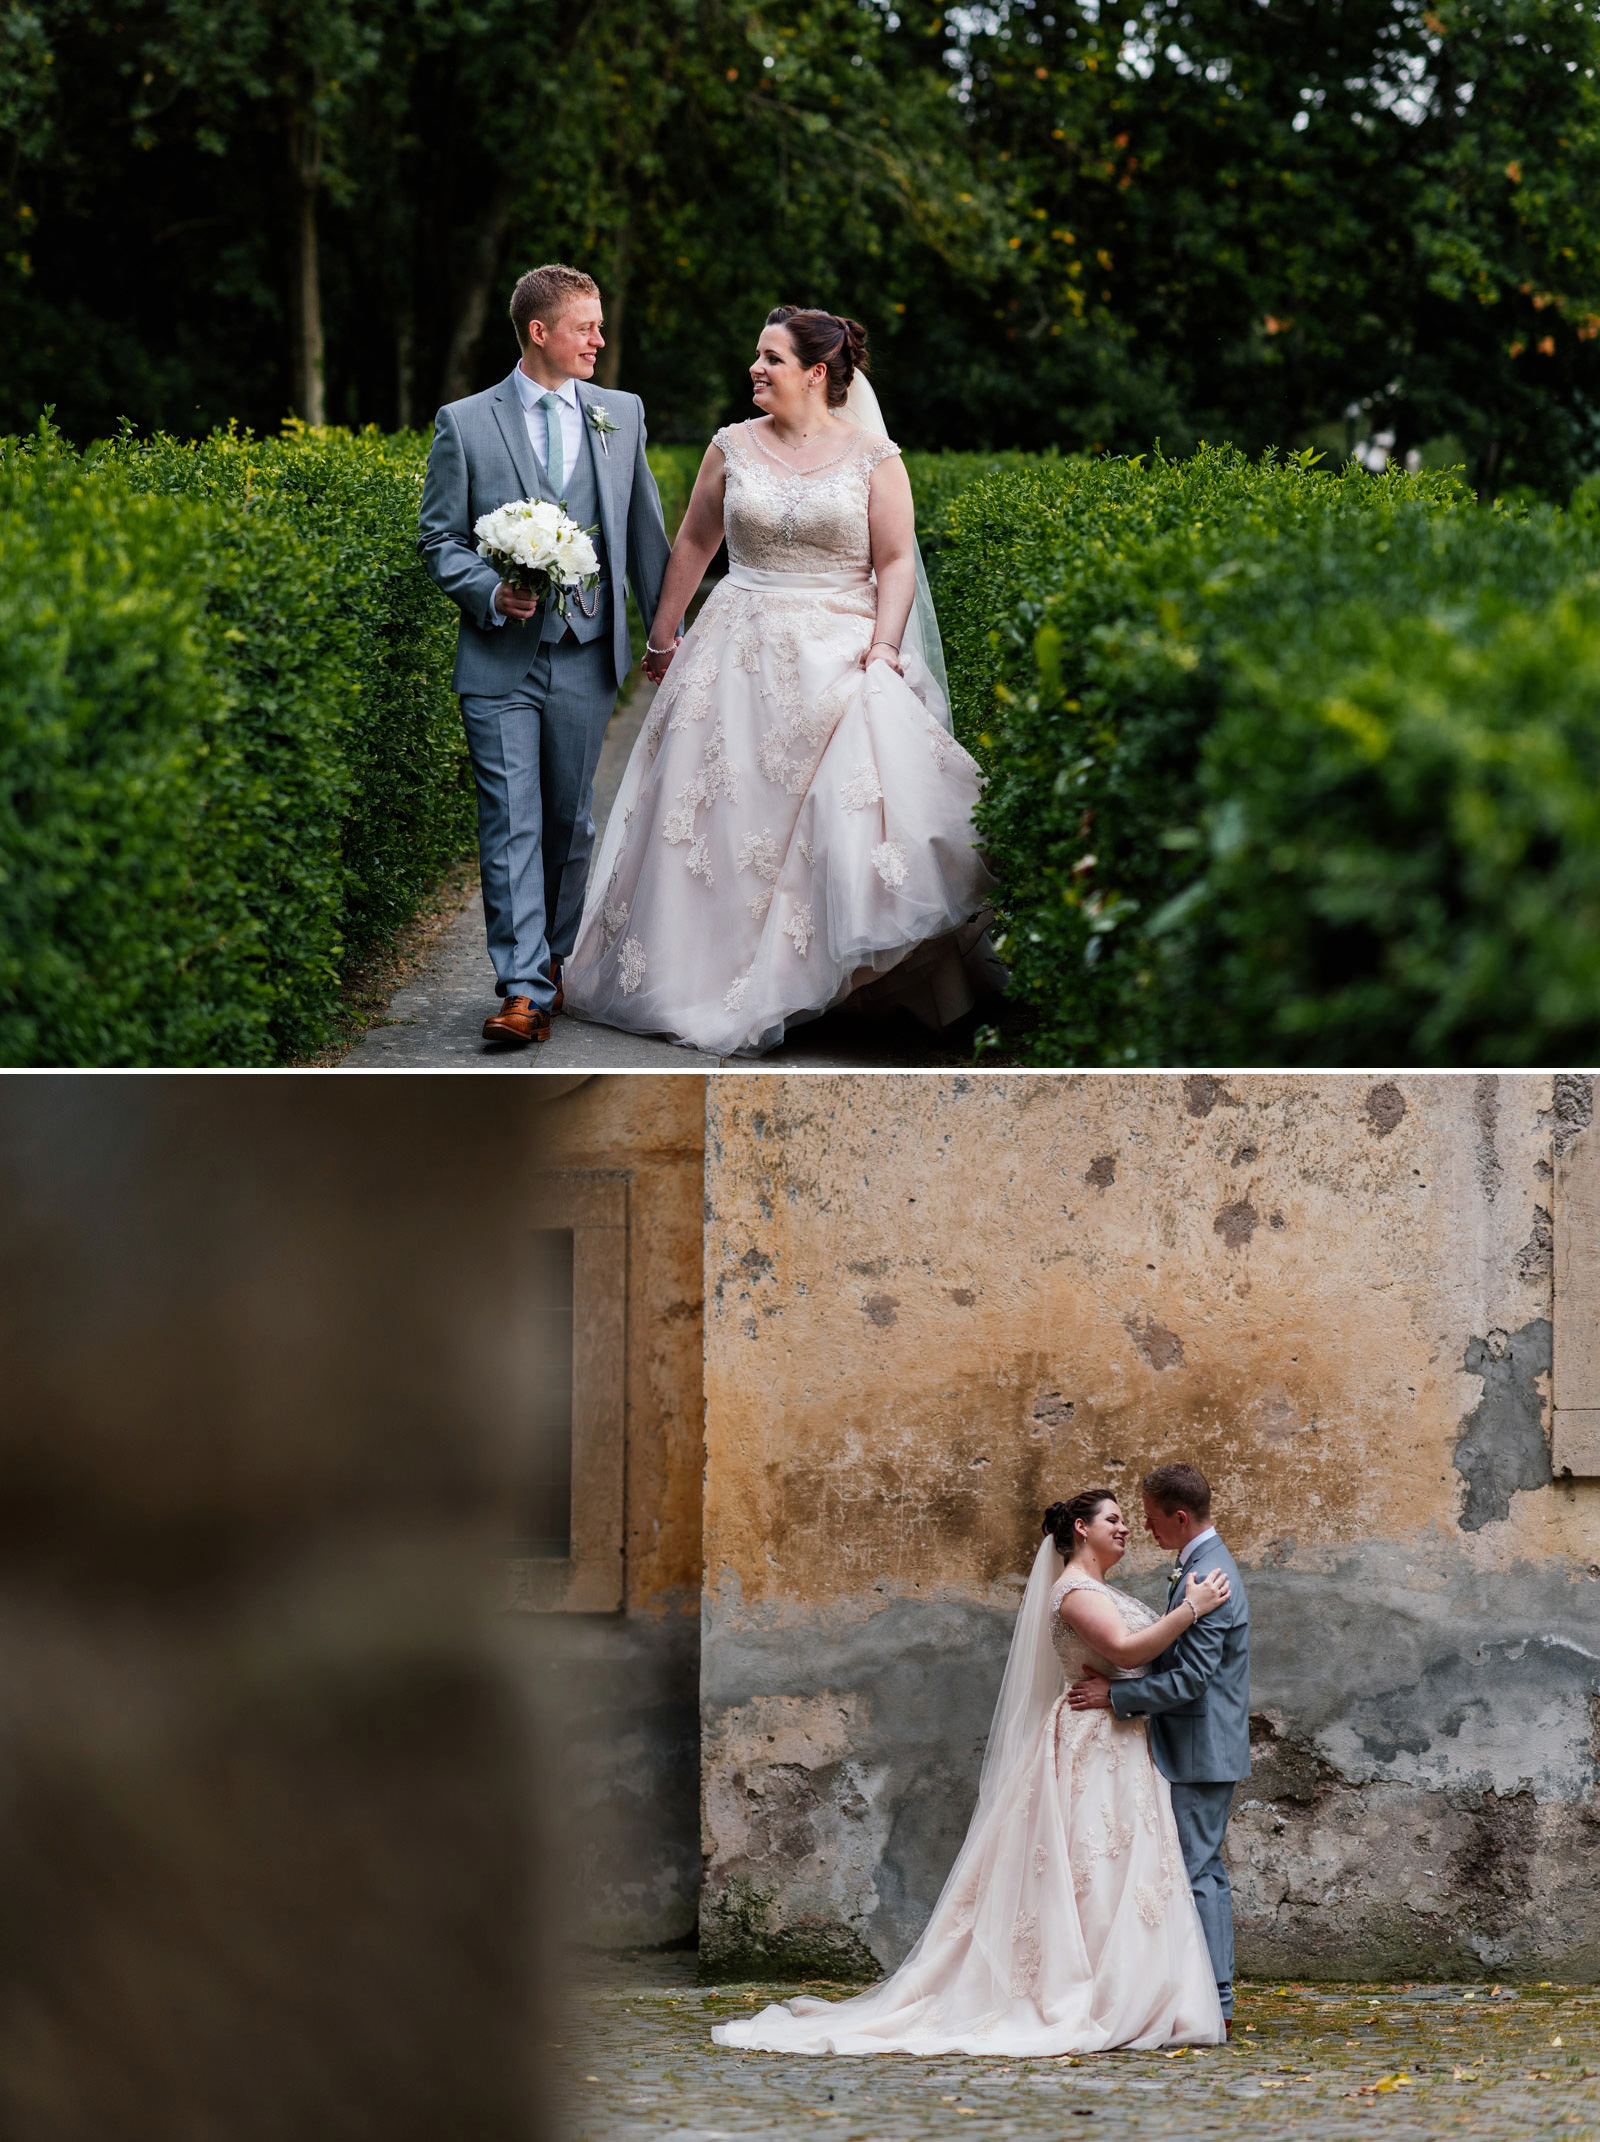 Rocca di Papa Wedding 2